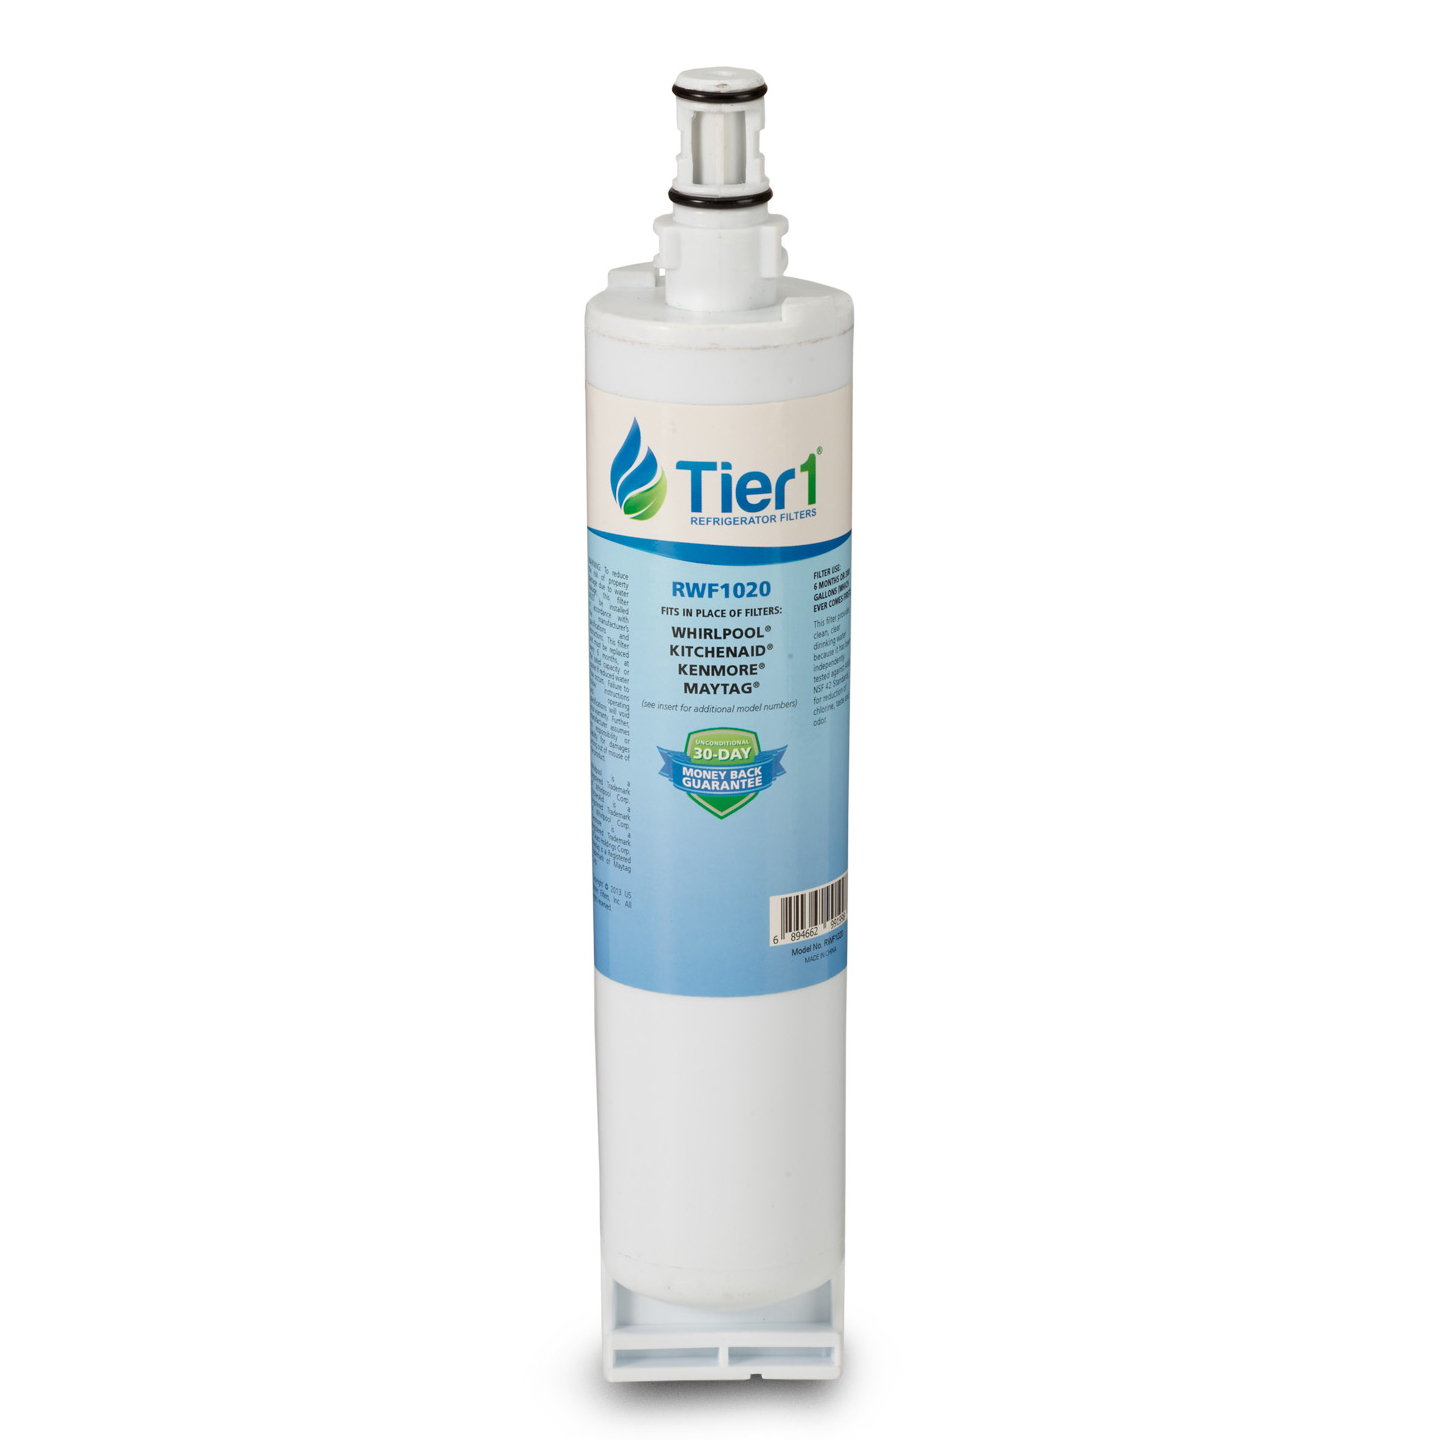 EveryDrop EDR5RXD1 Whirlpool 4396508/4396510 Comparable Refrigerator Water Filter Replacement By Tier1 TIER1-RWF1020